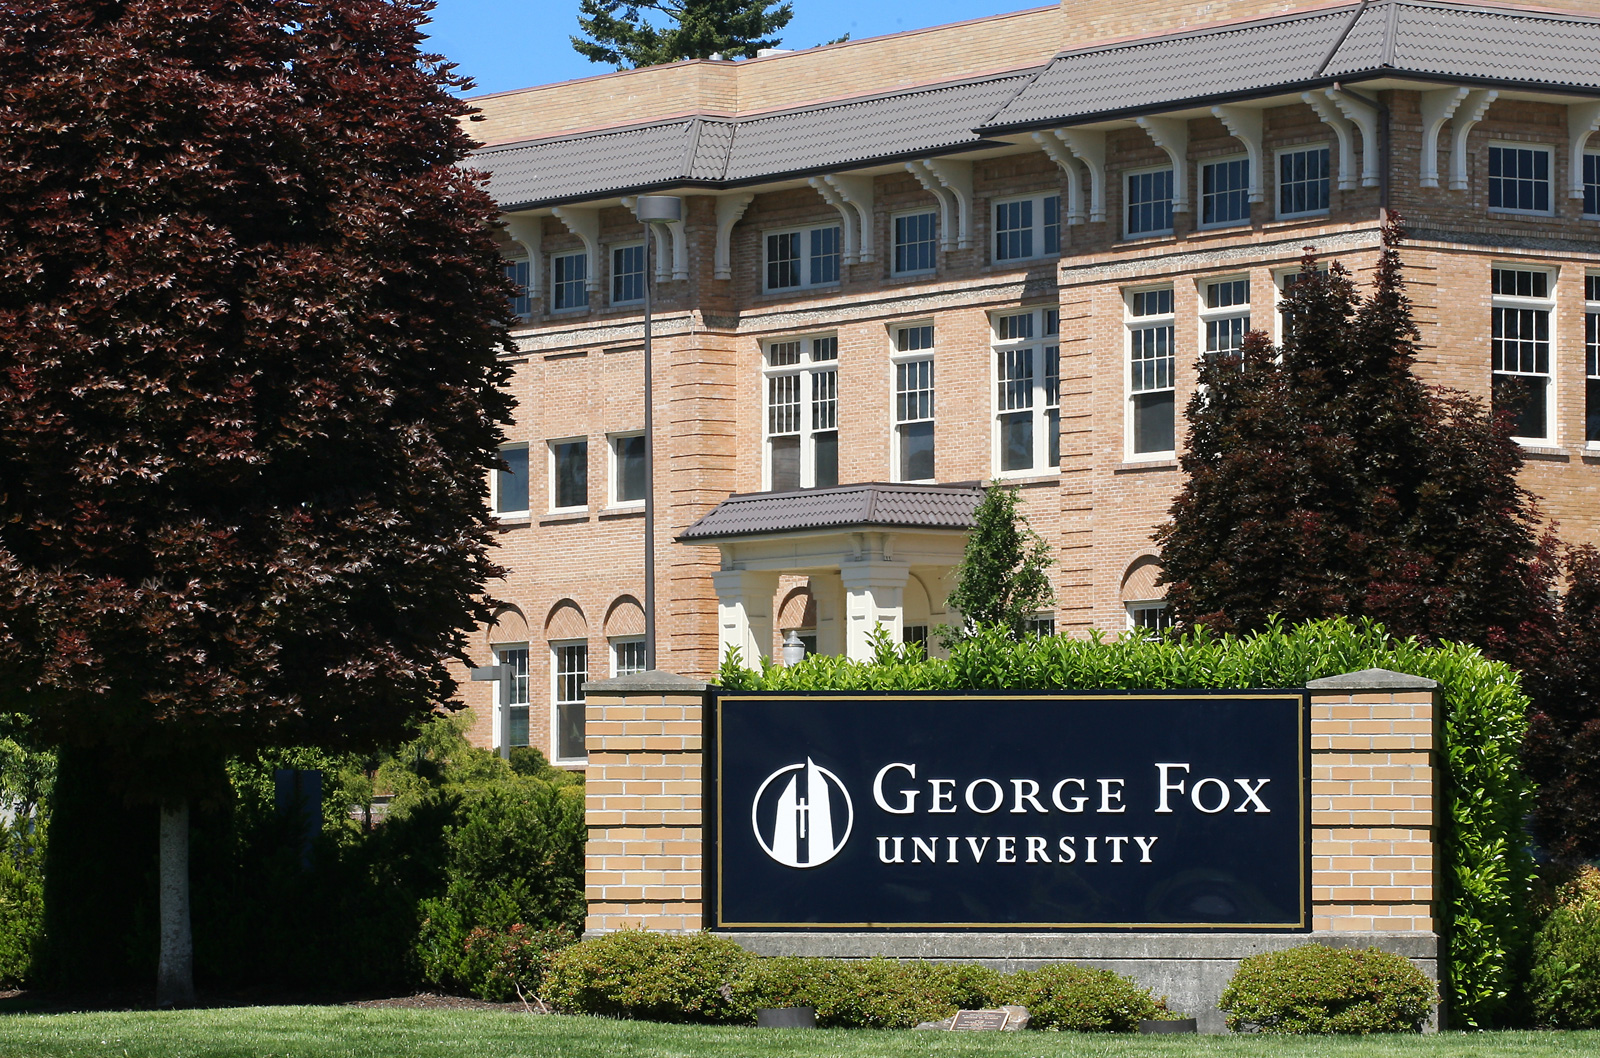 George Fox Univisersity